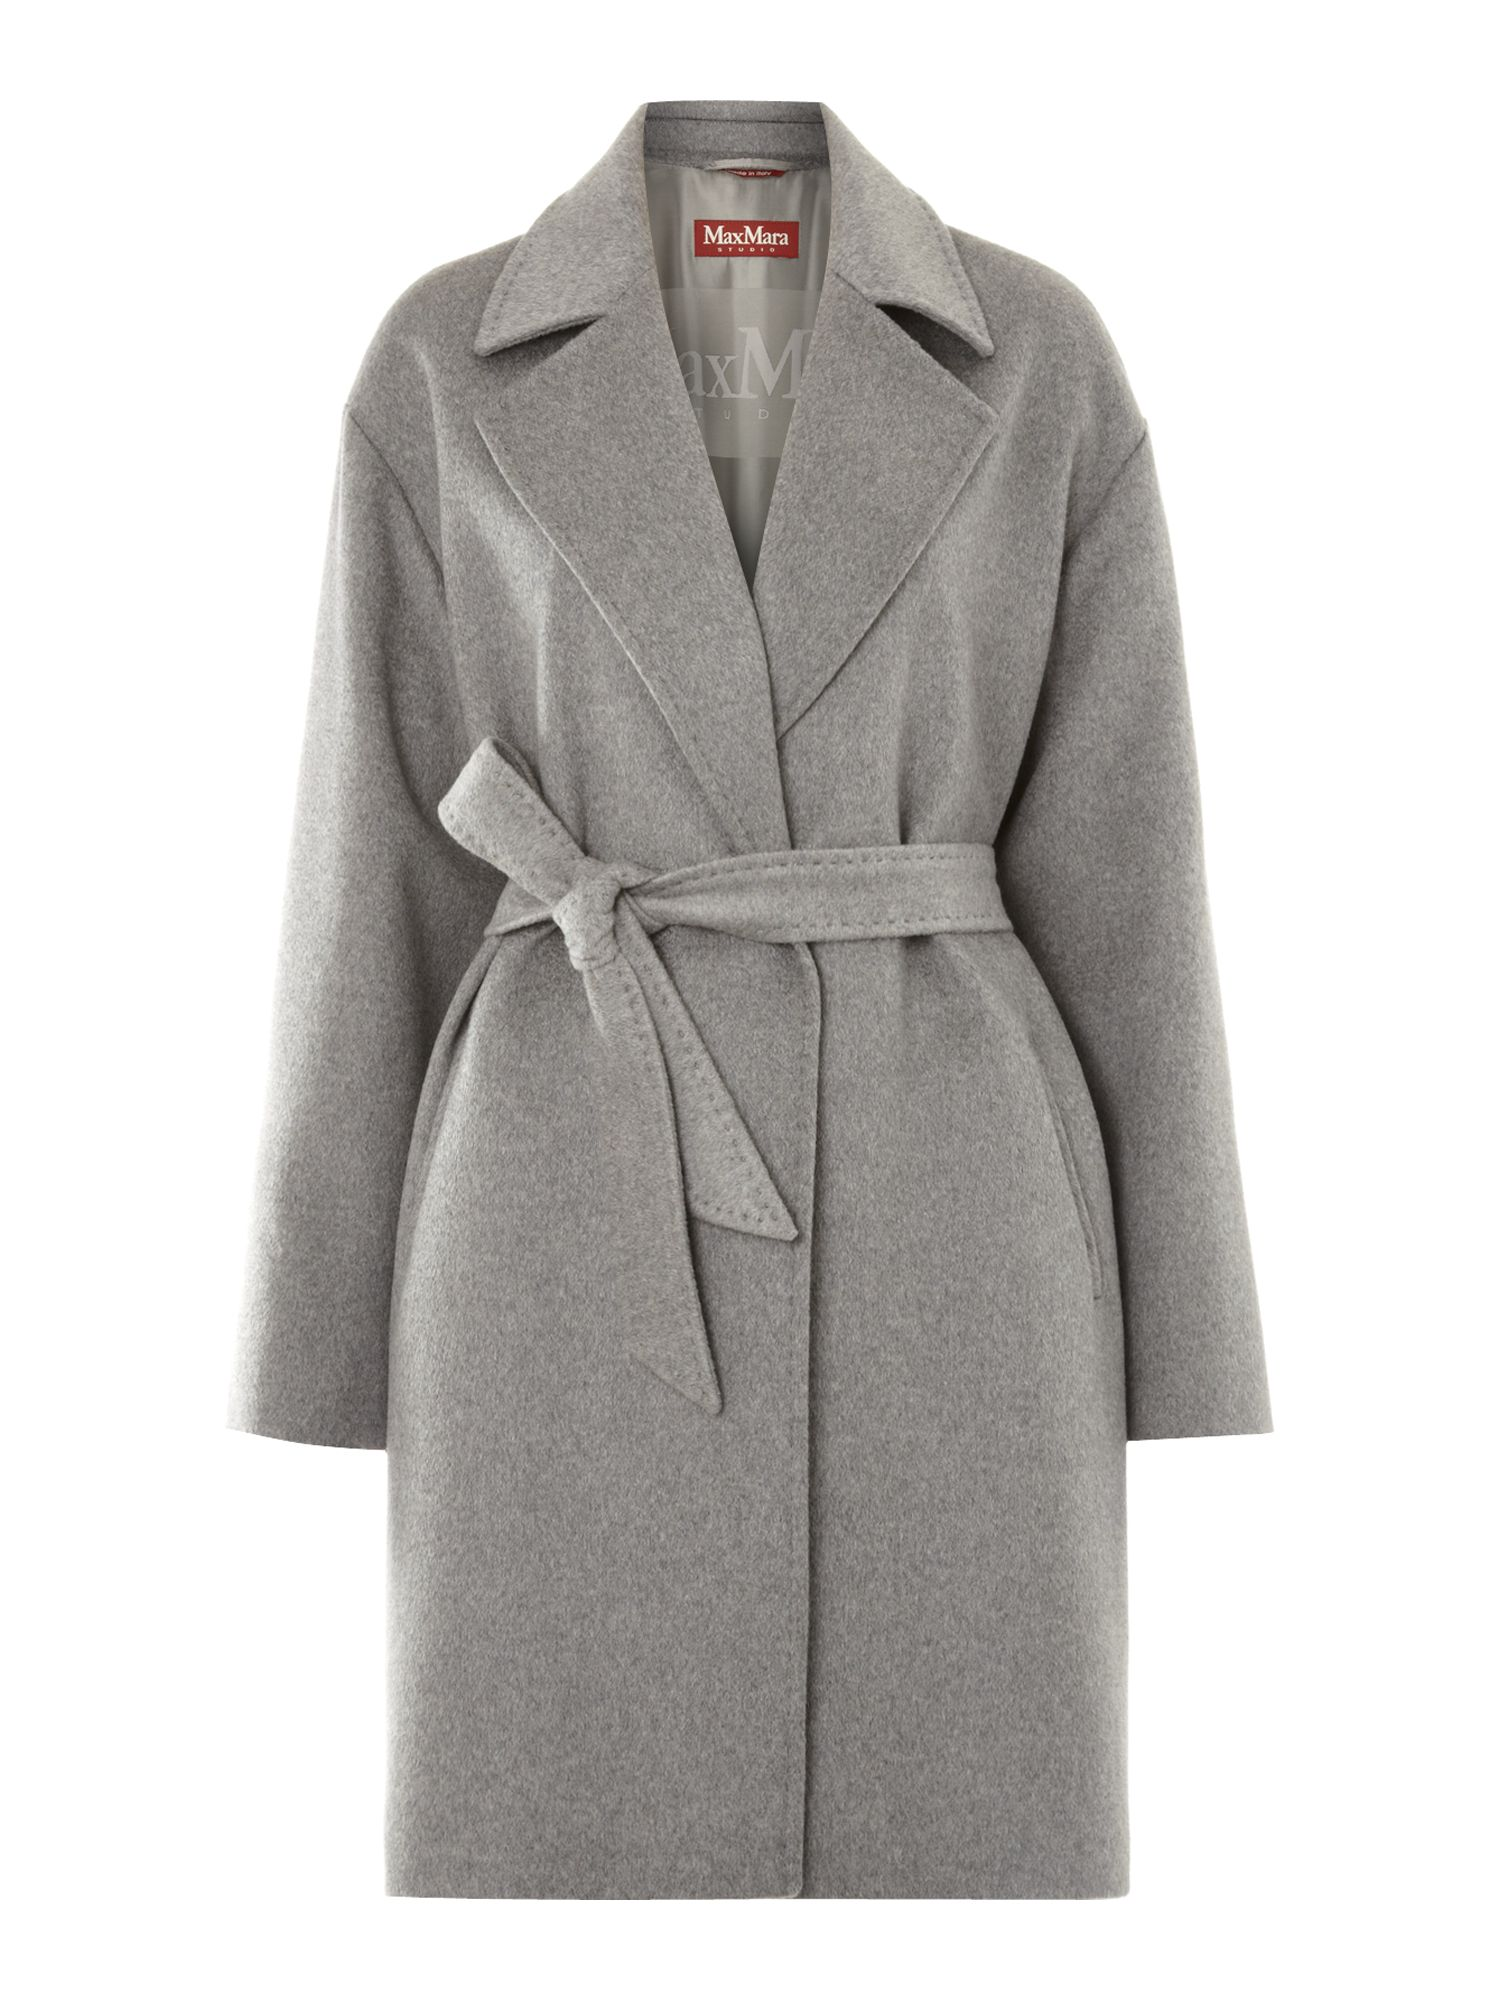 Giunco cashmere coat with belt